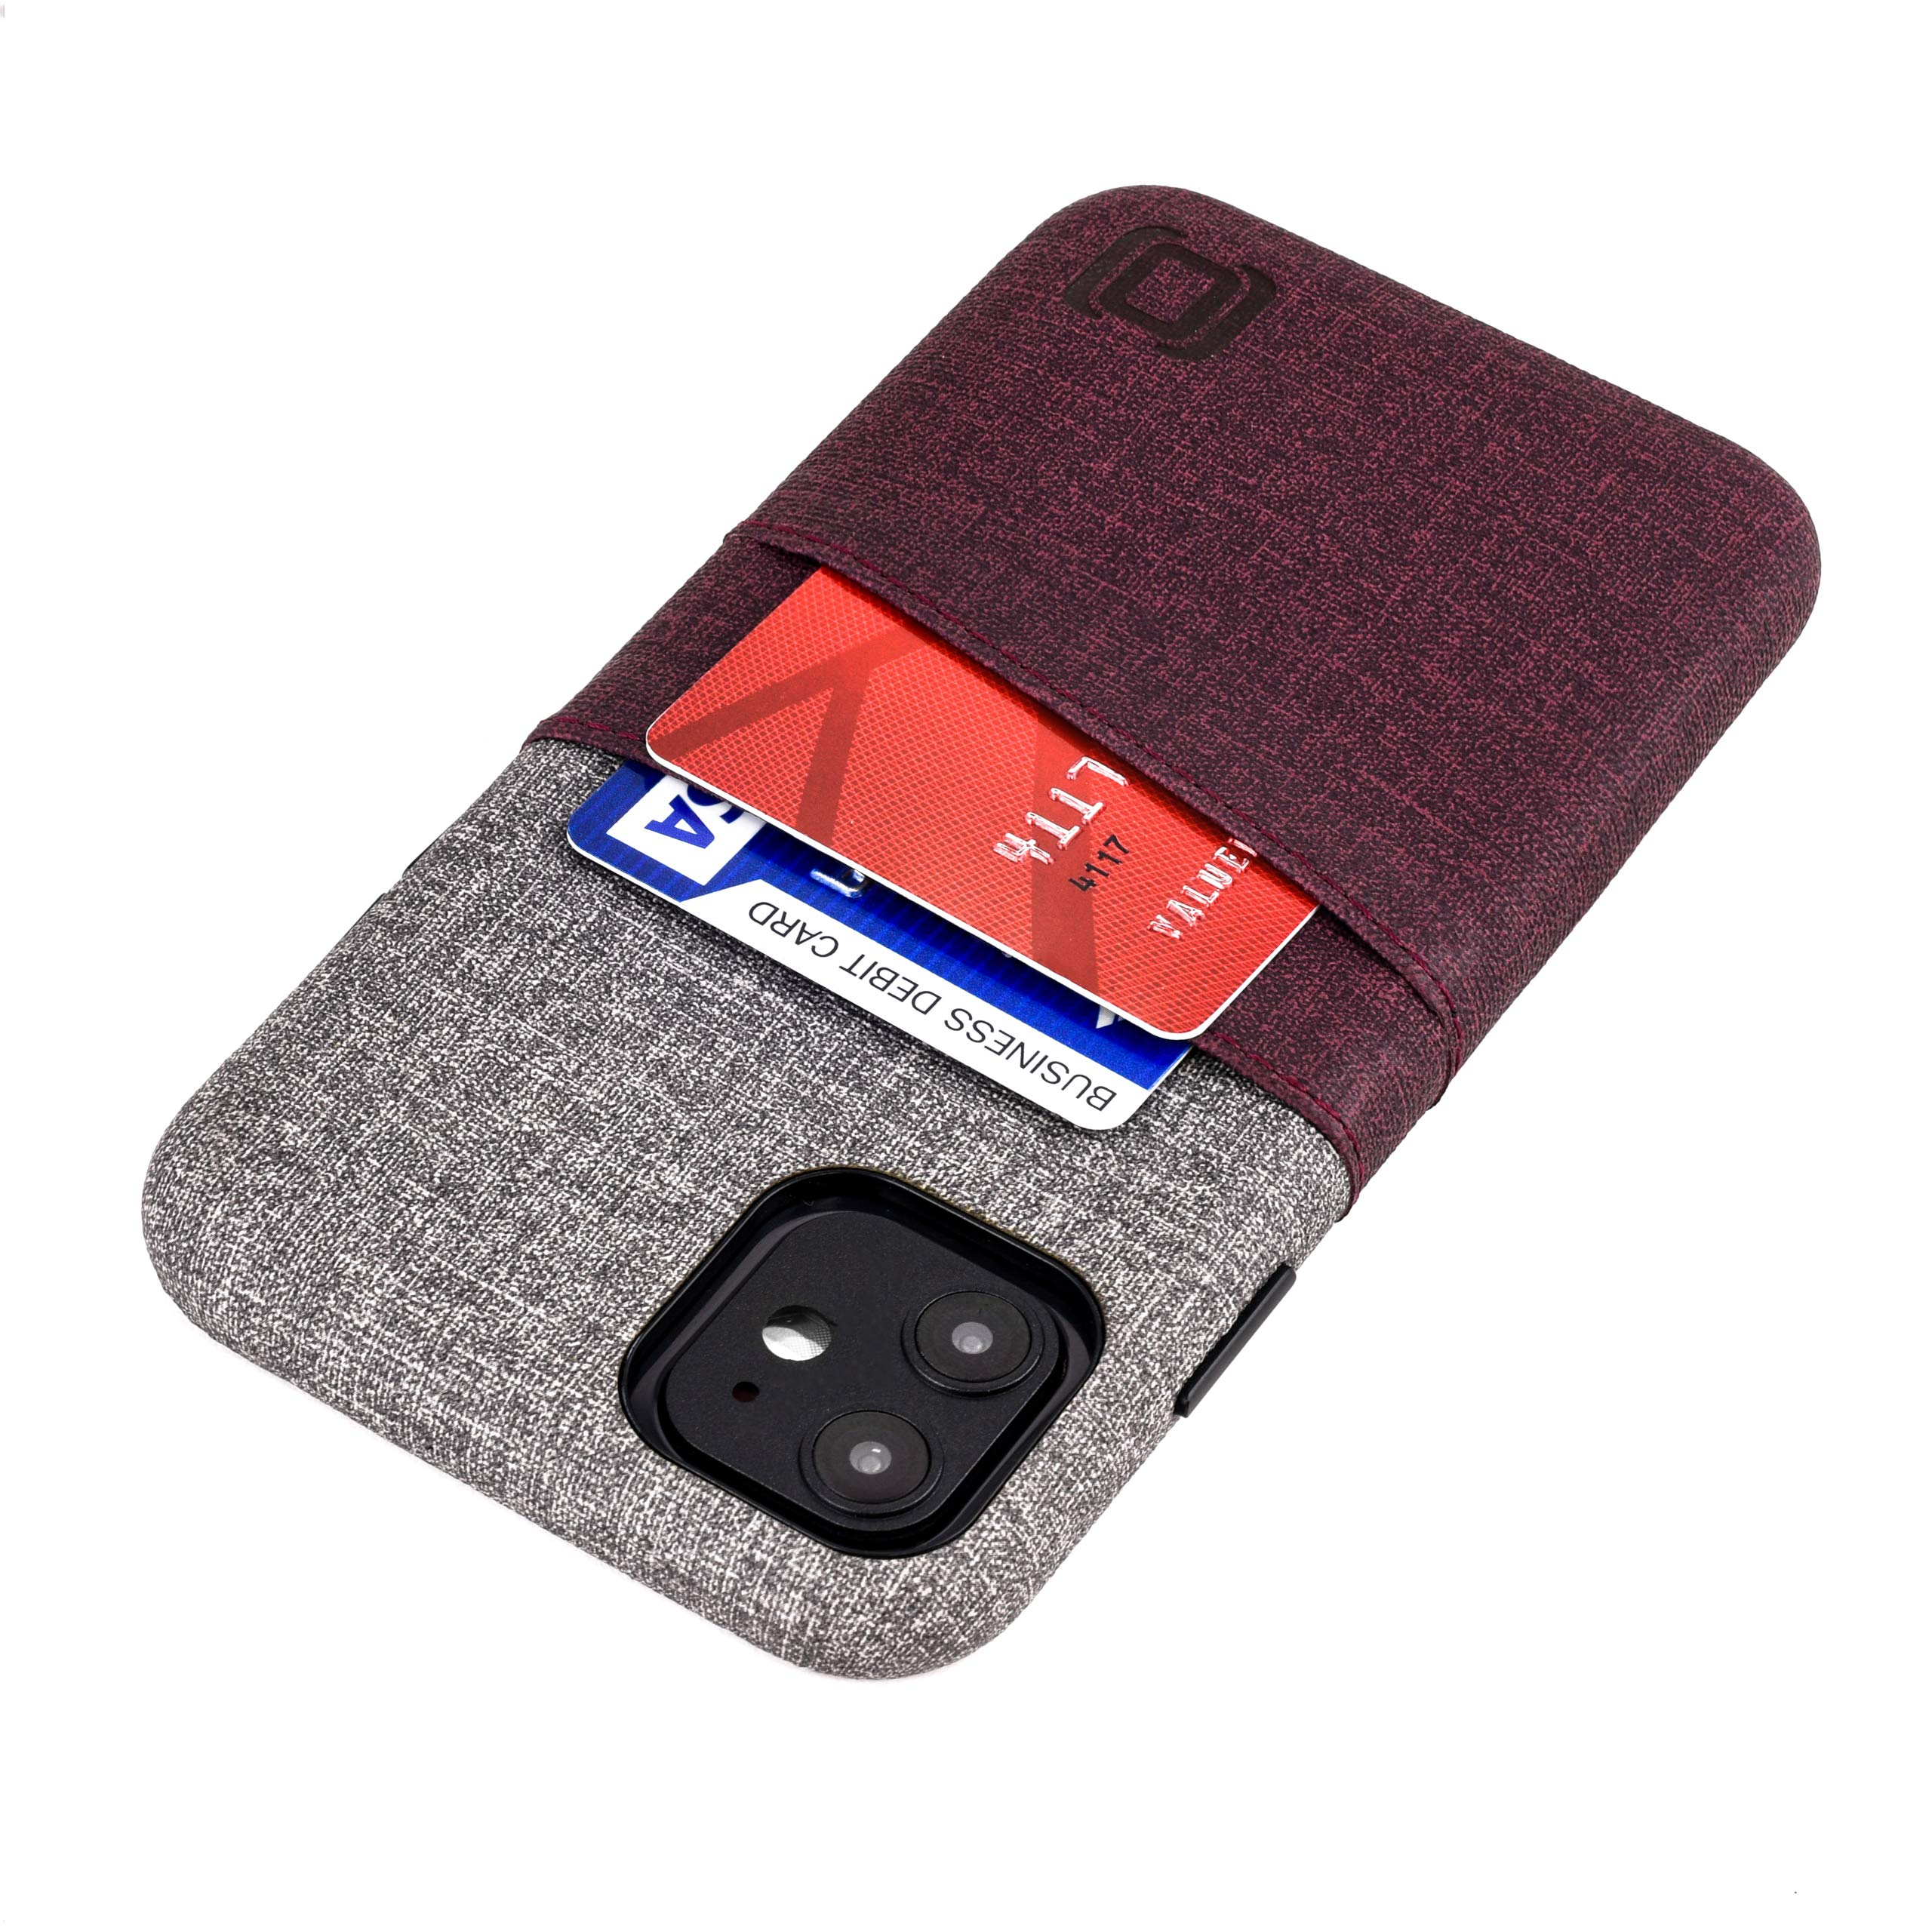 """Dockem iPhone 11 Wallet Case: Built-in Metal Plate for Magnetic Mounting & 2 Card Holders (6.1"""" Luxe M2 Synthetic Leather, Maroon & Grey)"""